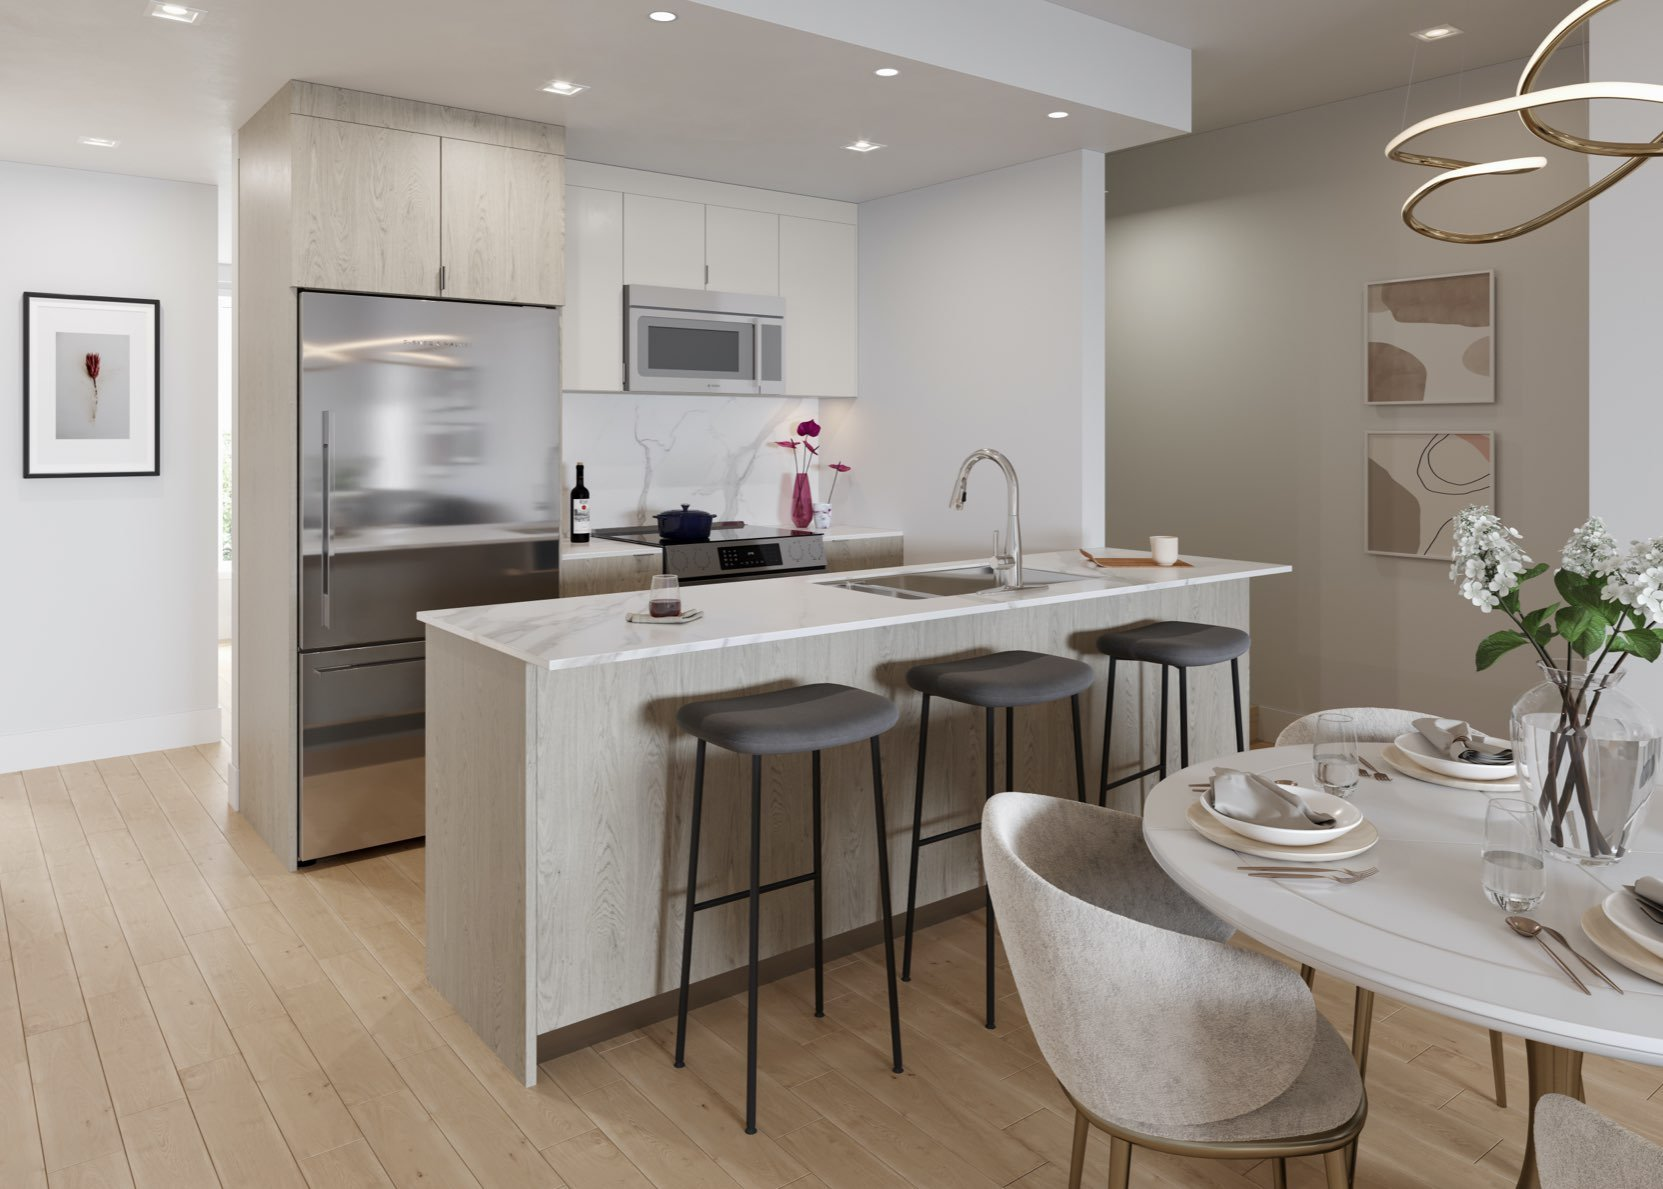 Lakewood - 2057 E 1st Ave - by Dimex Group!